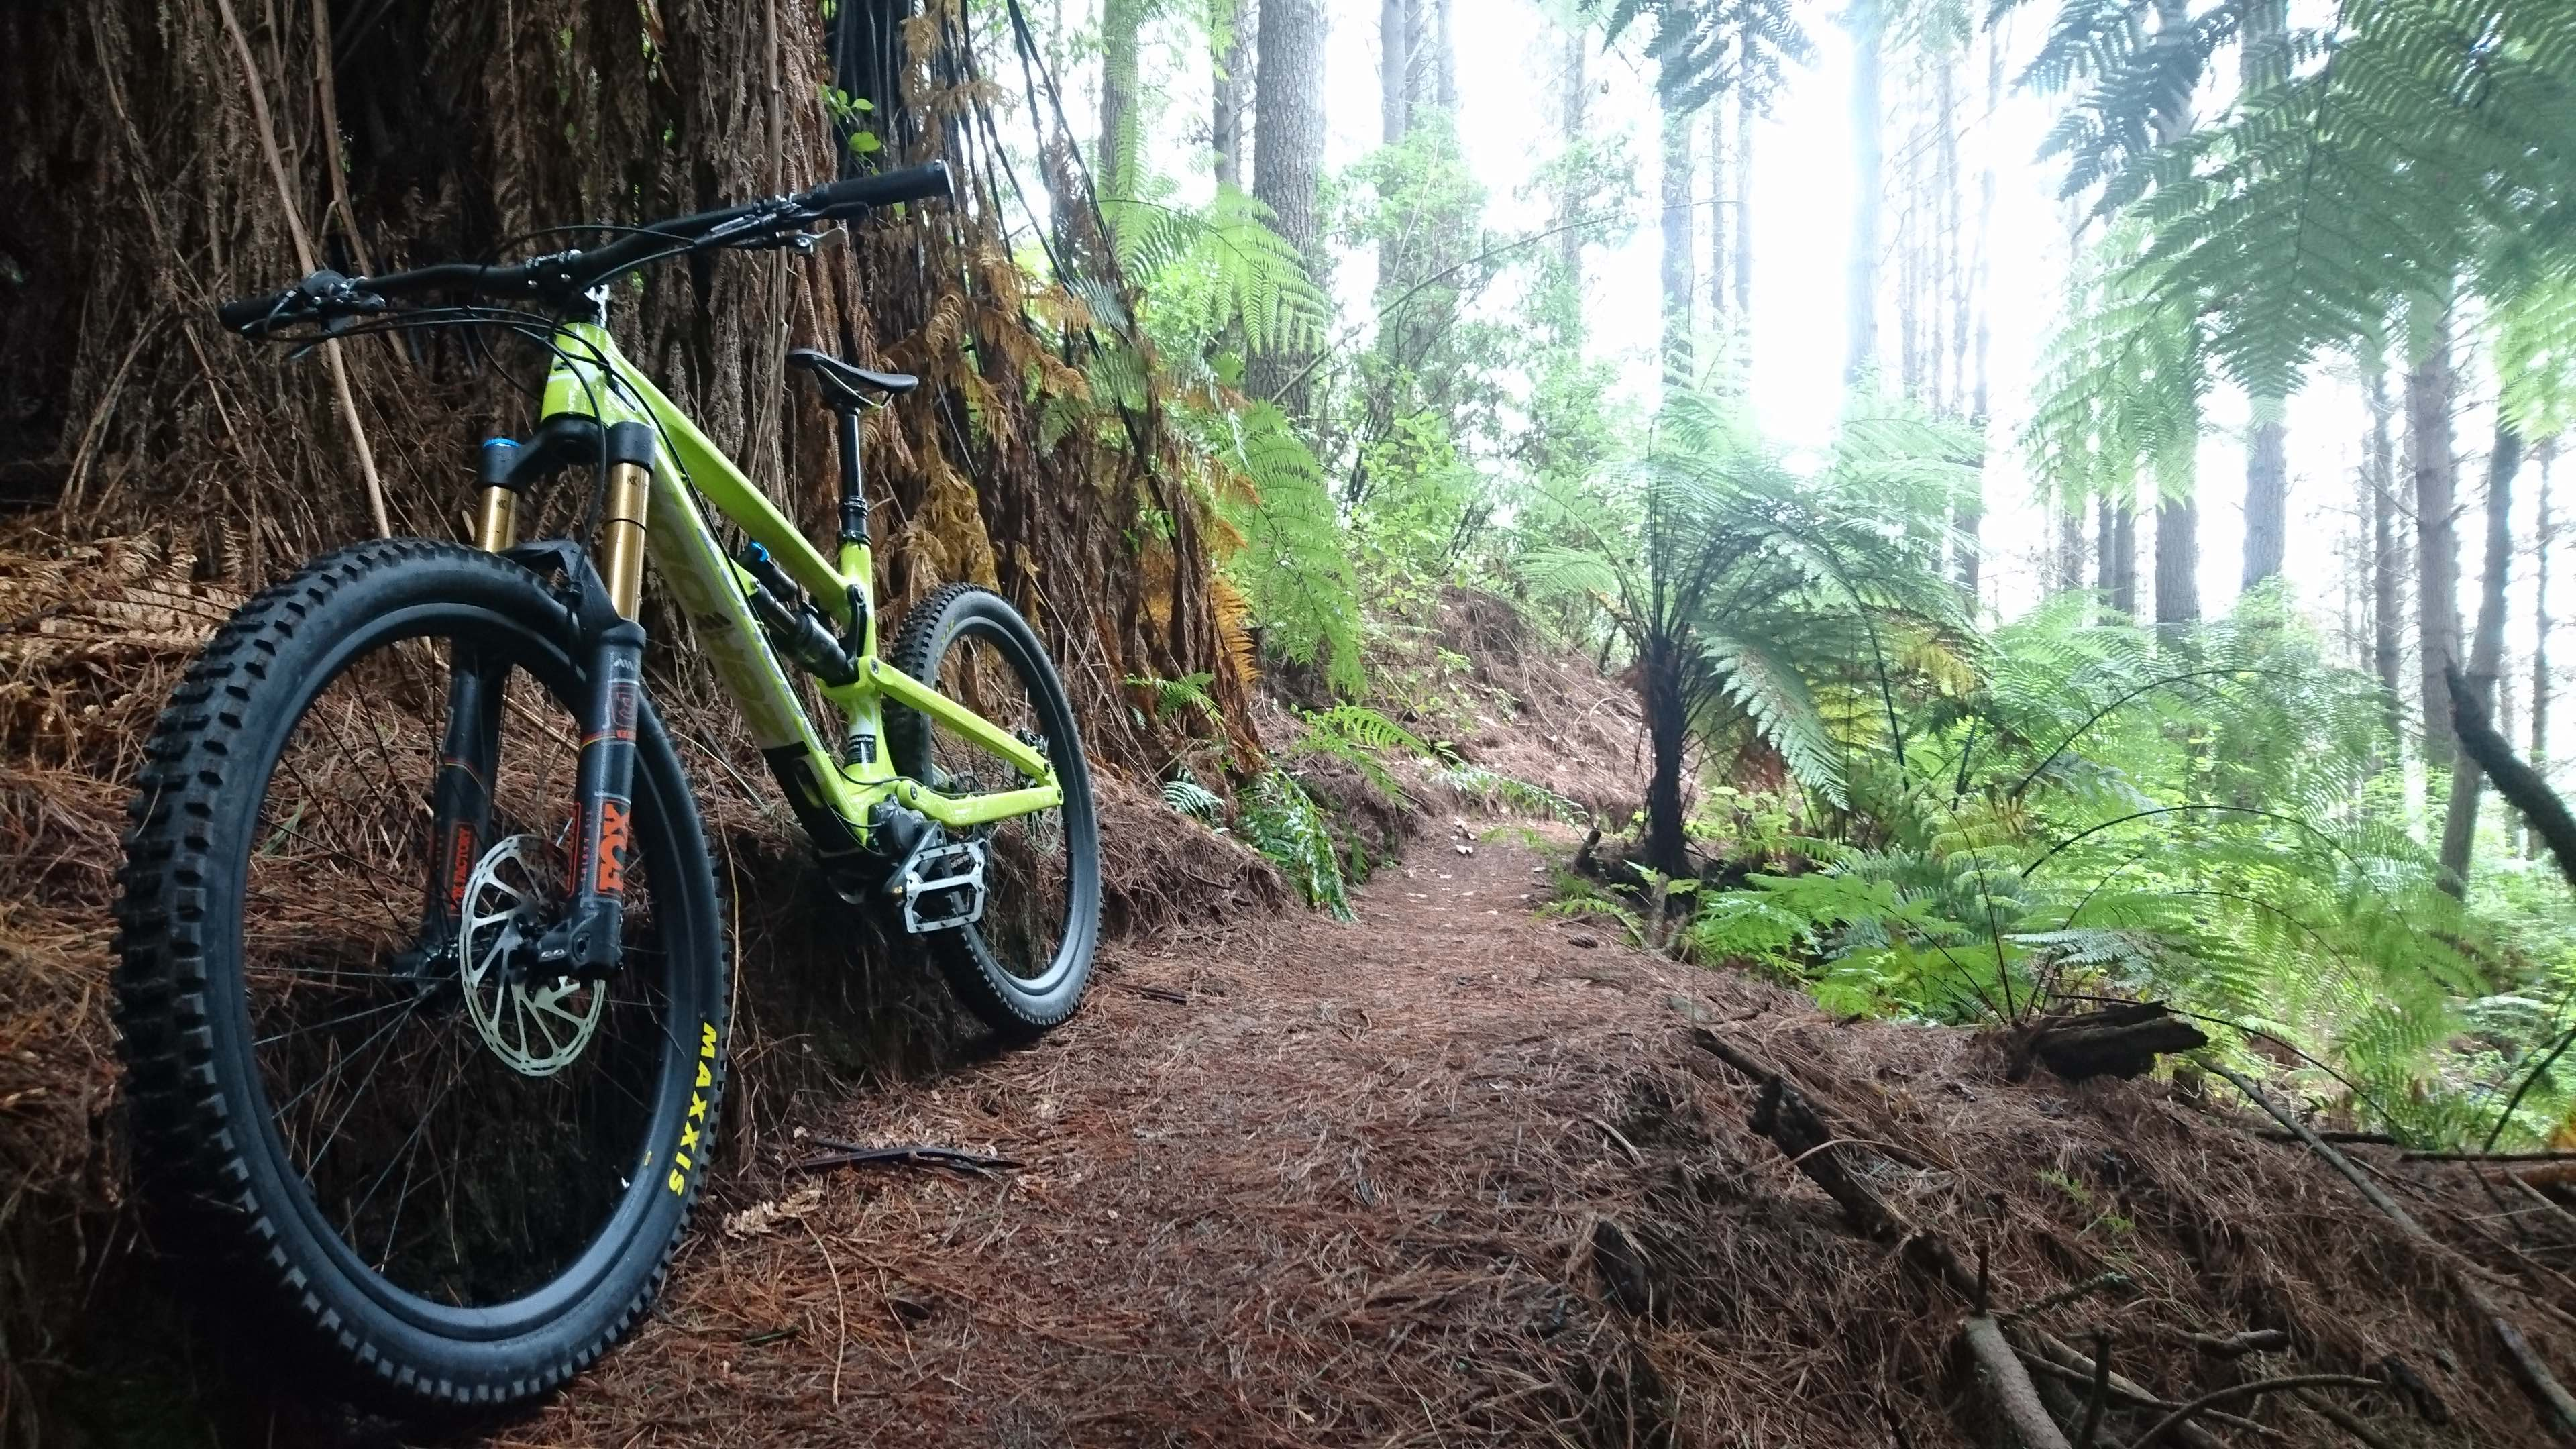 The Zerode Taniwha Enduro MTB machine in its natural habitat